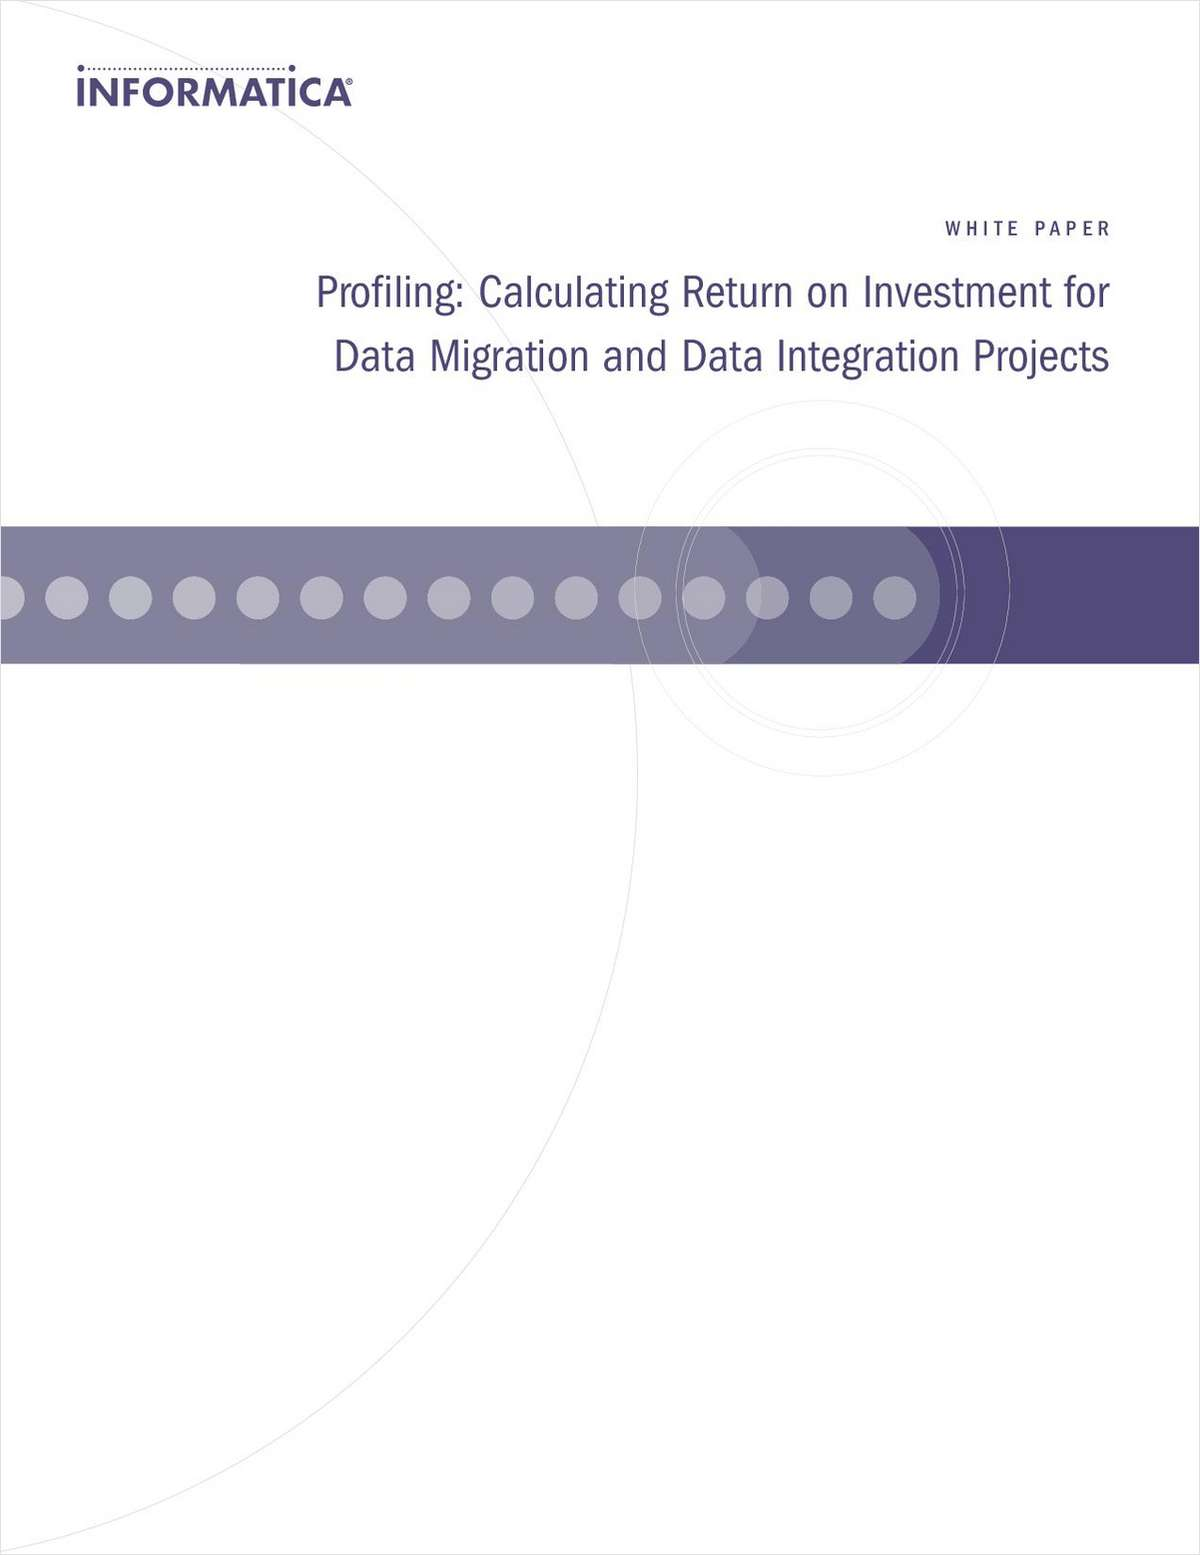 Calculating ROI for Data Migration and Data Integration Projects